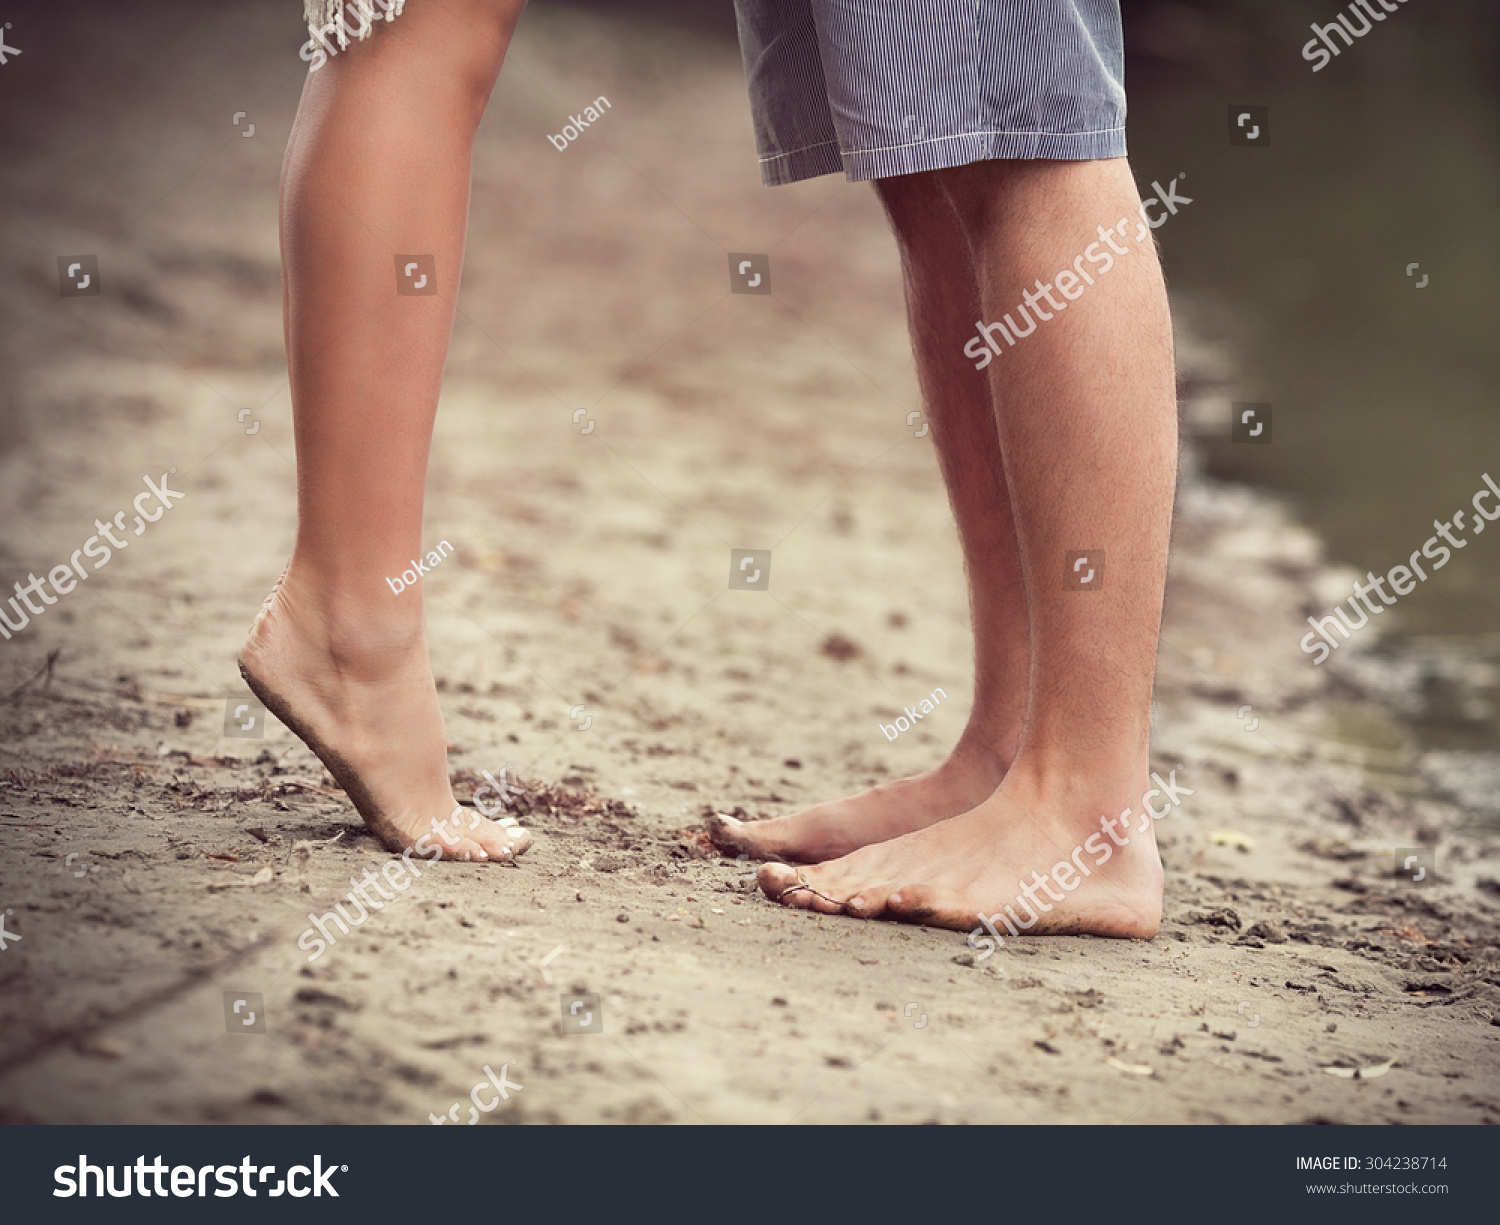 Close-up of barefoot pair of human's feet on sandy beach standing next to the lake  #304238714